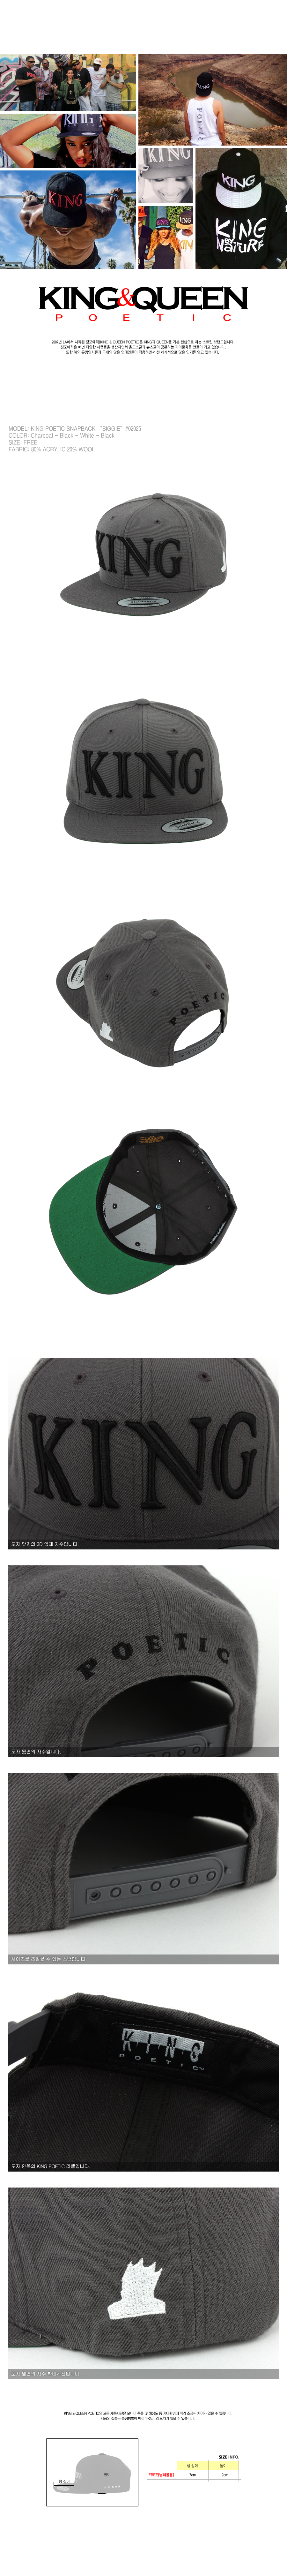 [ KINGPOETIC ] [KINGPOETIC] KING POETIC SNAPBACK BIGGIE 02025